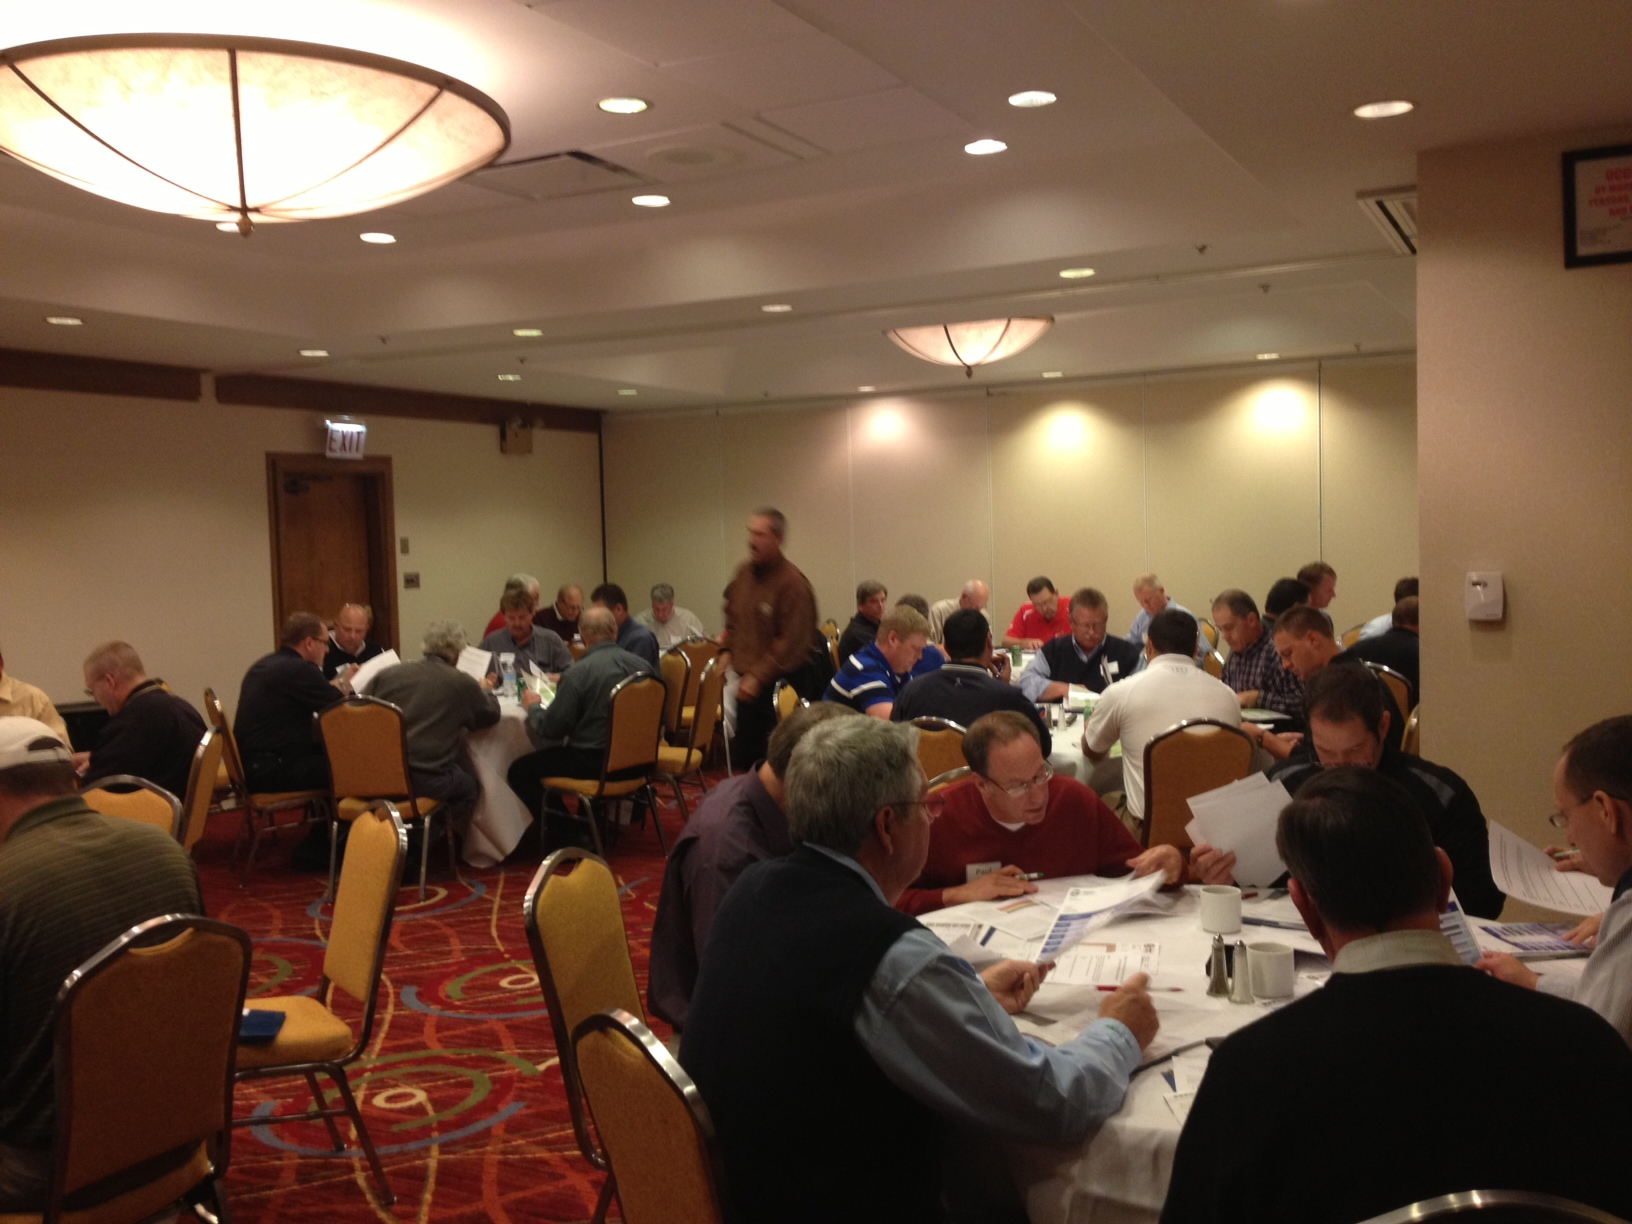 Distributor reps work together to assess soil and water quality reports